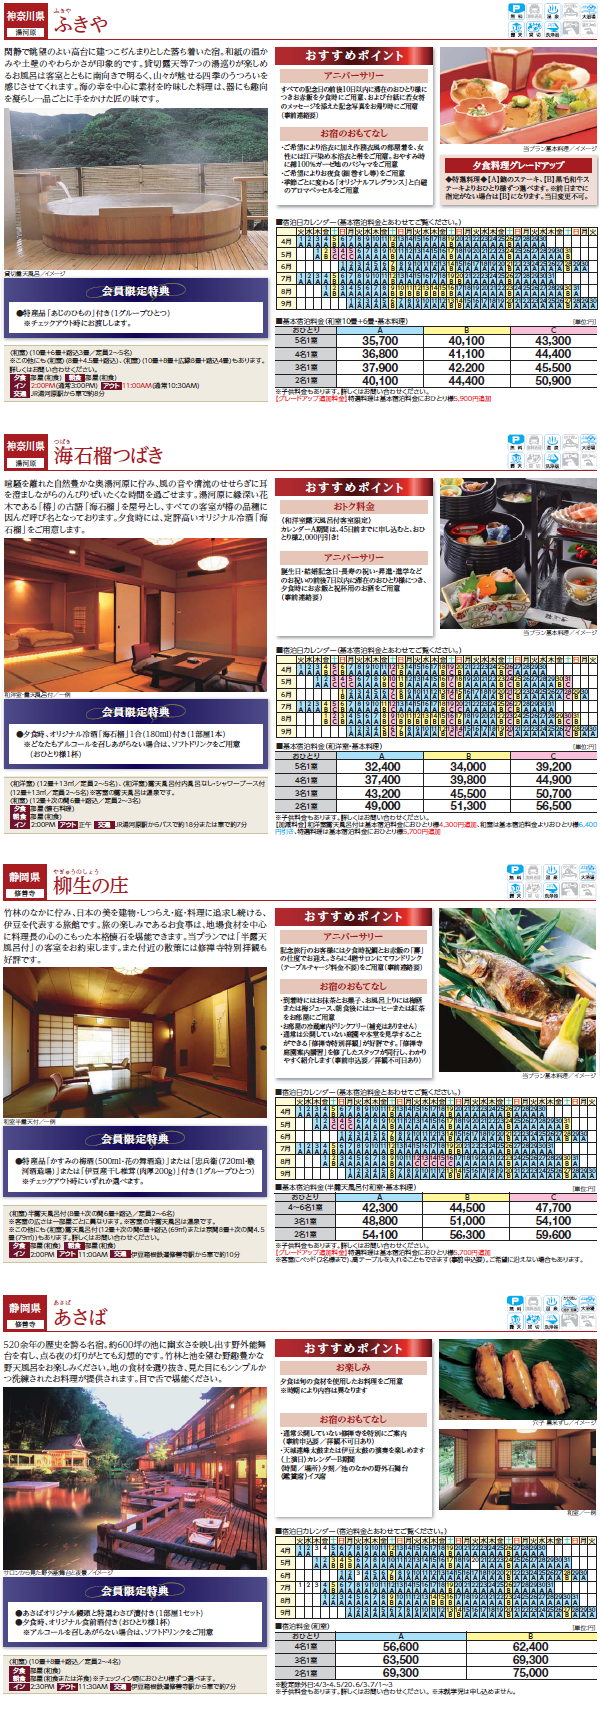 stay_plan_ryokan_1403_8